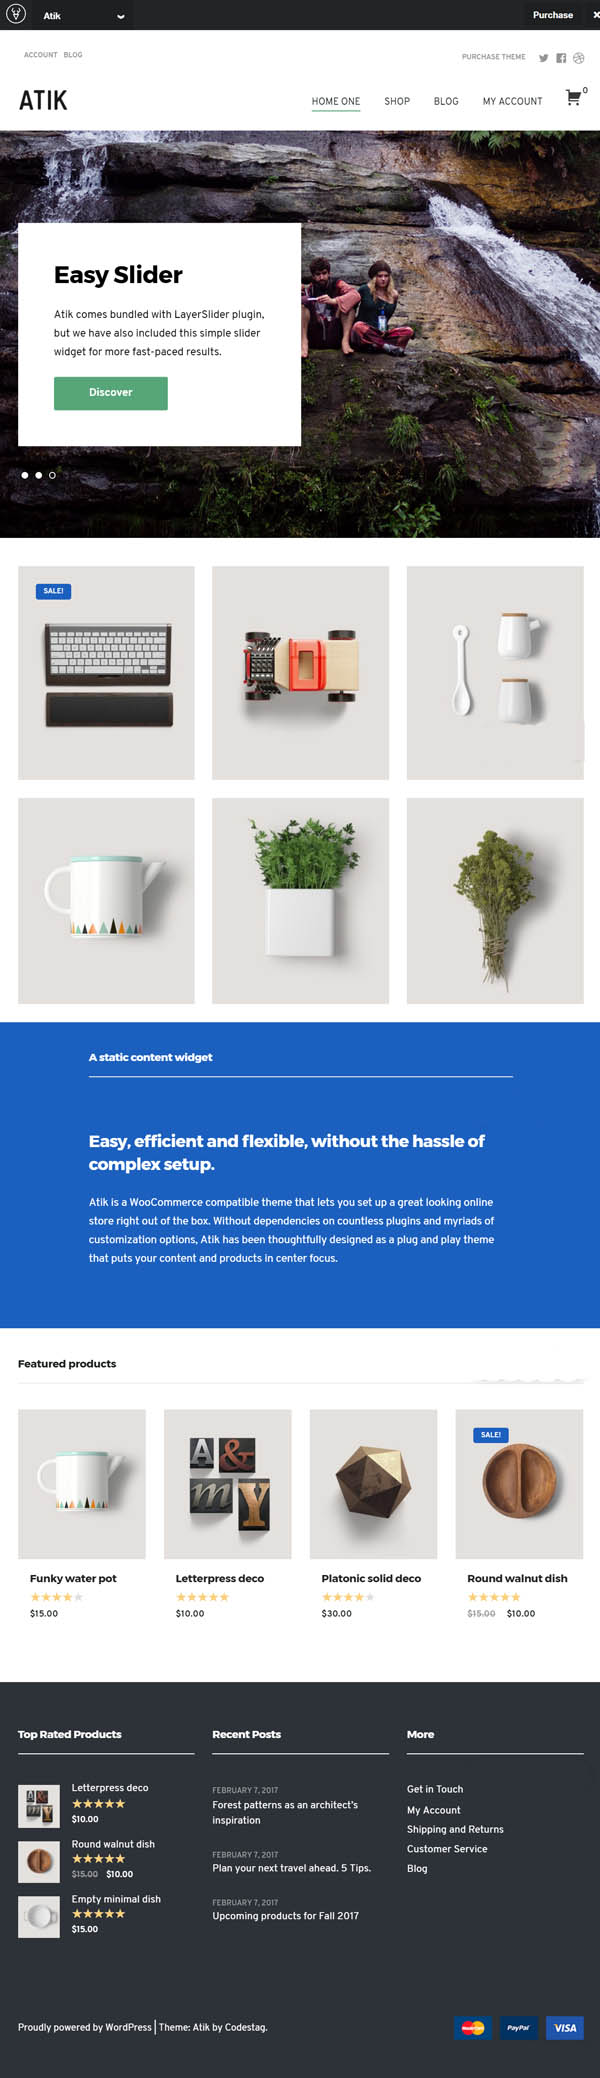 Atik : A Simple WordPress Theme for your Online Store